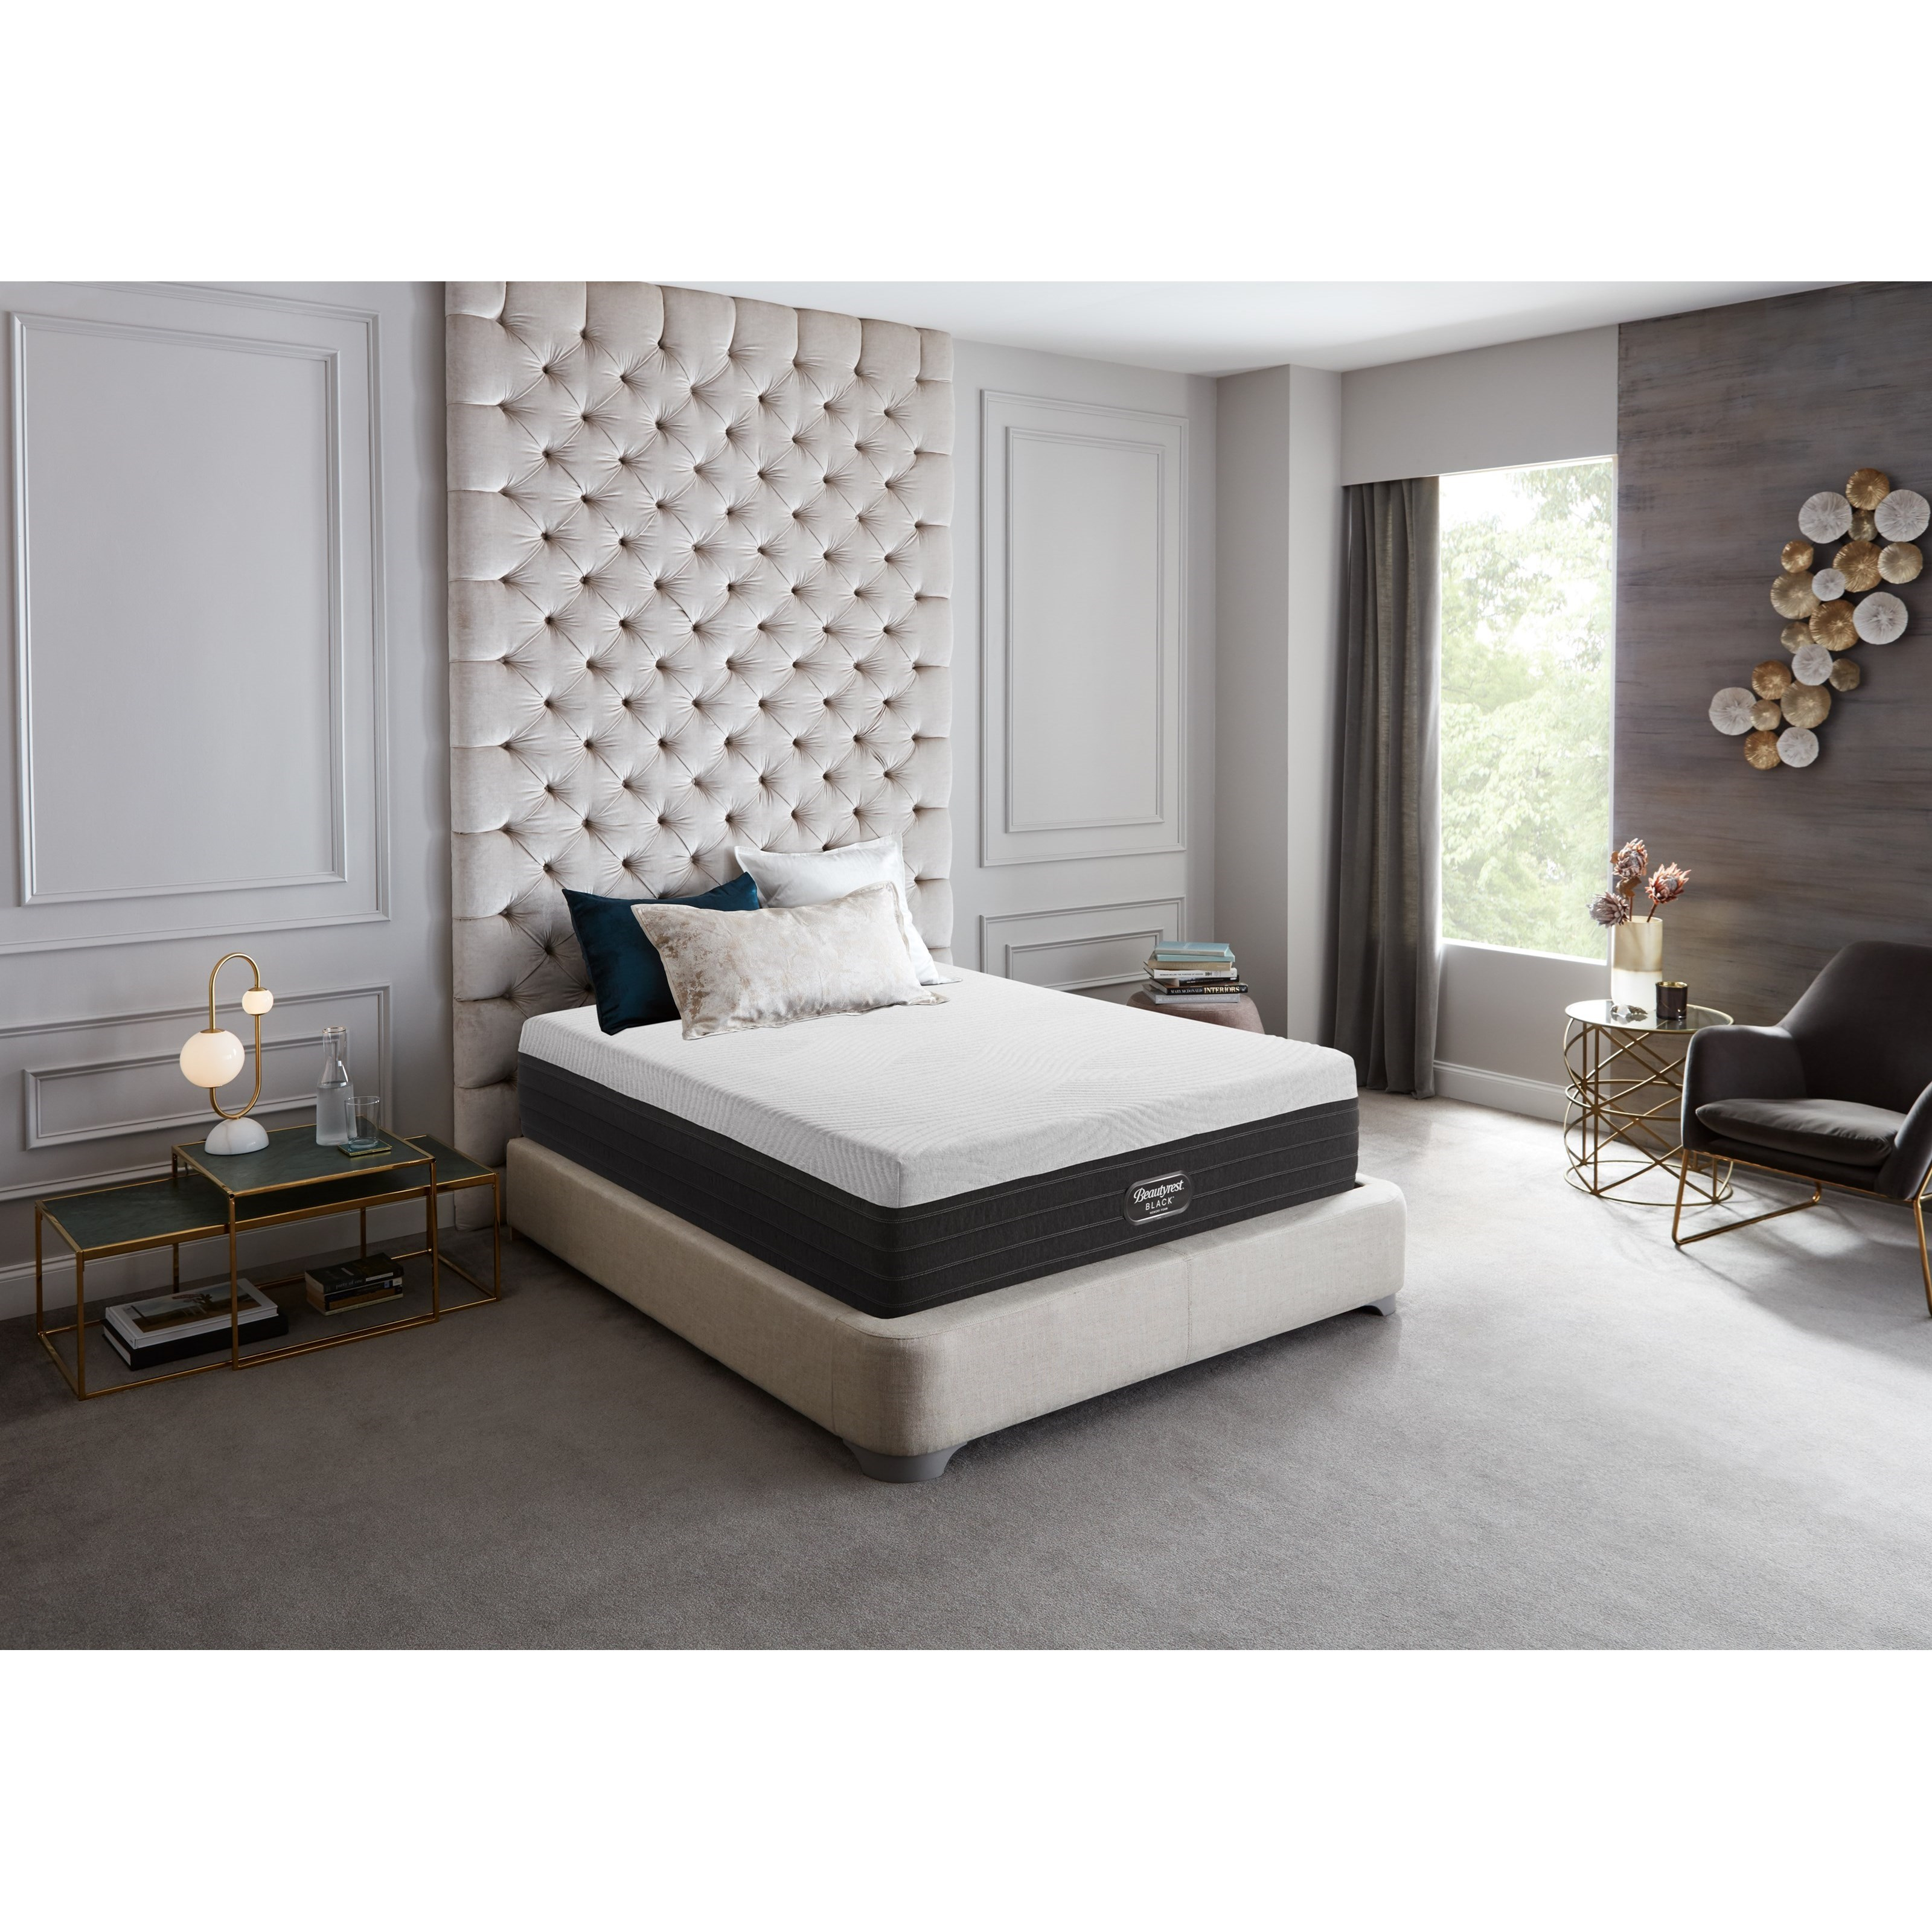 Picture of: Beautyrest Canada Chic Ultra Plush King 12 Gel Memory Foam Mattress And 9 Beautyrest Black Foundation Bennett S Furniture And Mattresses Mattress And Box Spring Sets